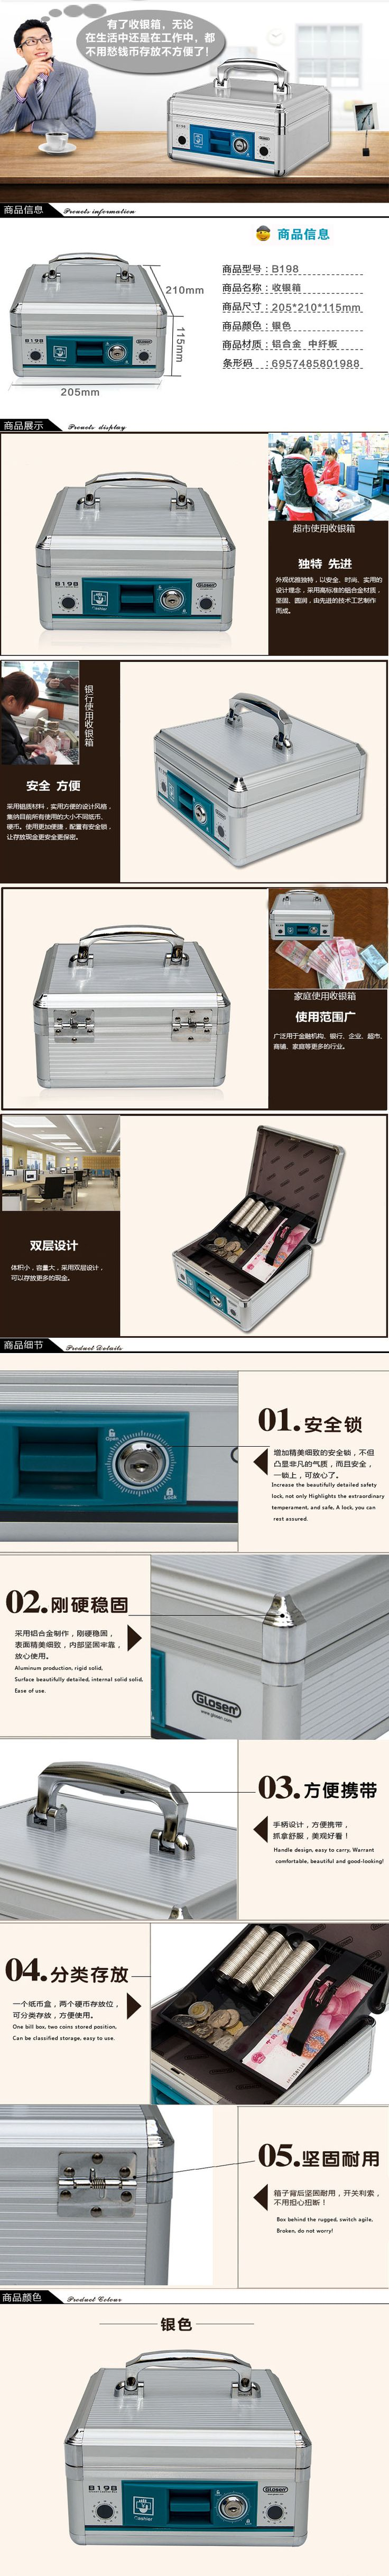 17 best images about cashier box for home use bank super market glosen elegant cashier box widely used in super markets banks home use